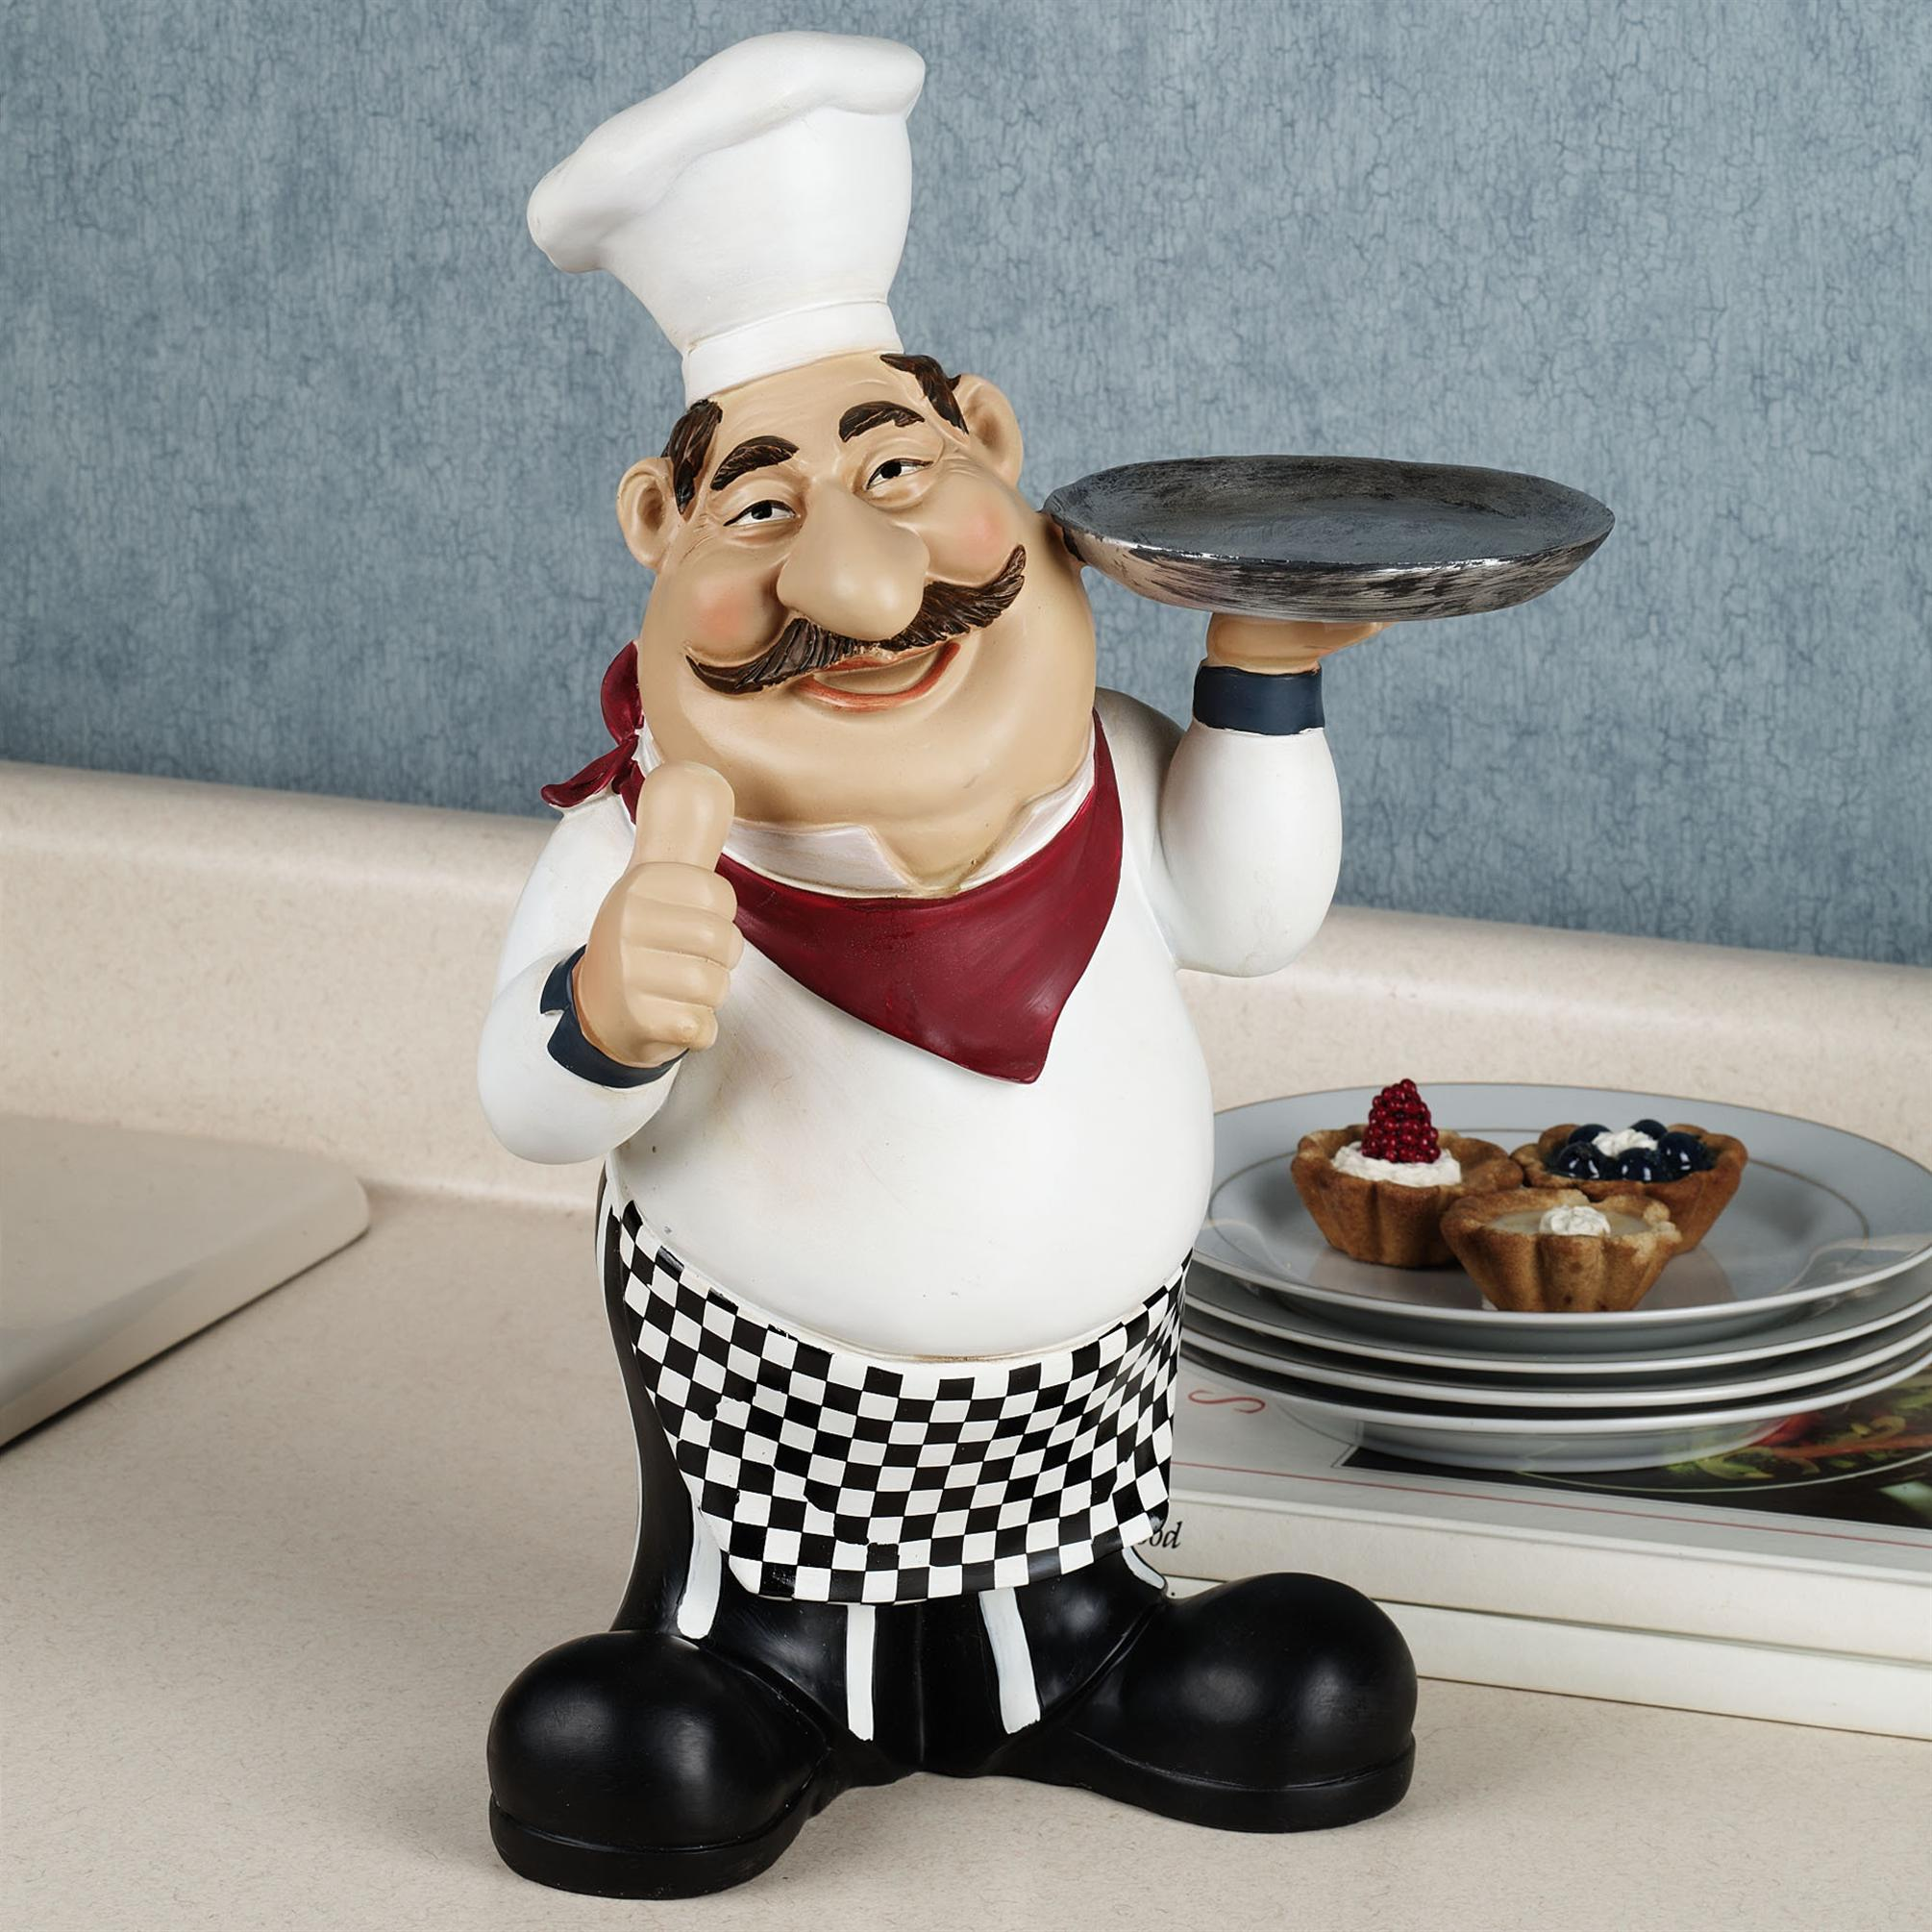 Get Real Italian Look In Your Kitchen With Fat Chef